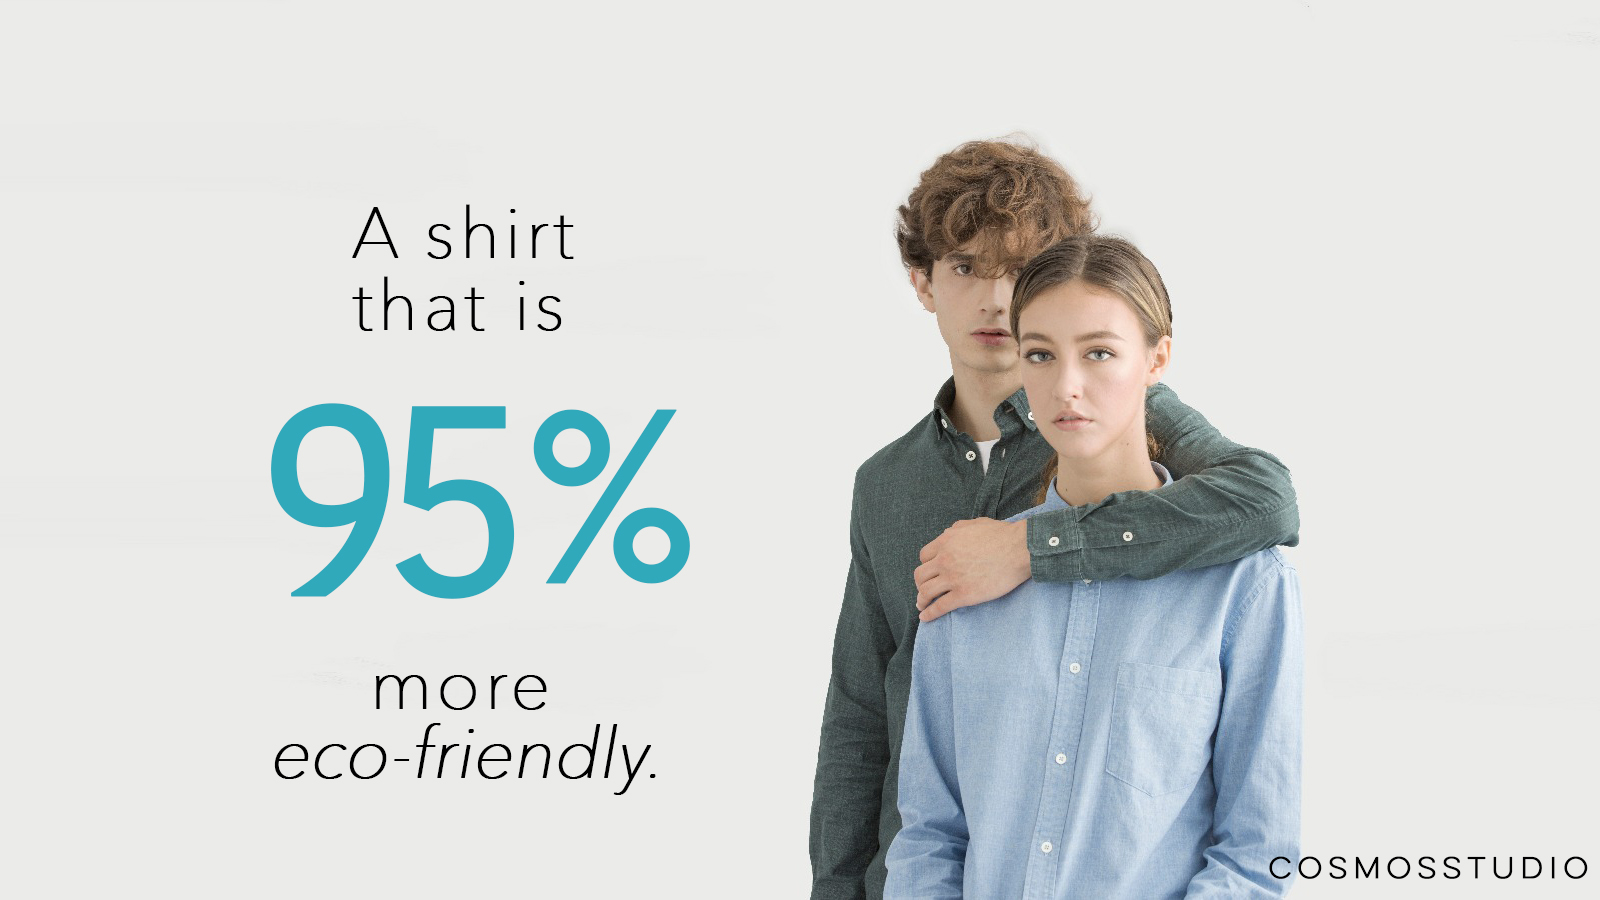 The eco-friendly shirt production is powered by a newly invented colour diffusion technology that is said to make it 95% more eco-friendly, compared to any other apparel making process, according to the company.